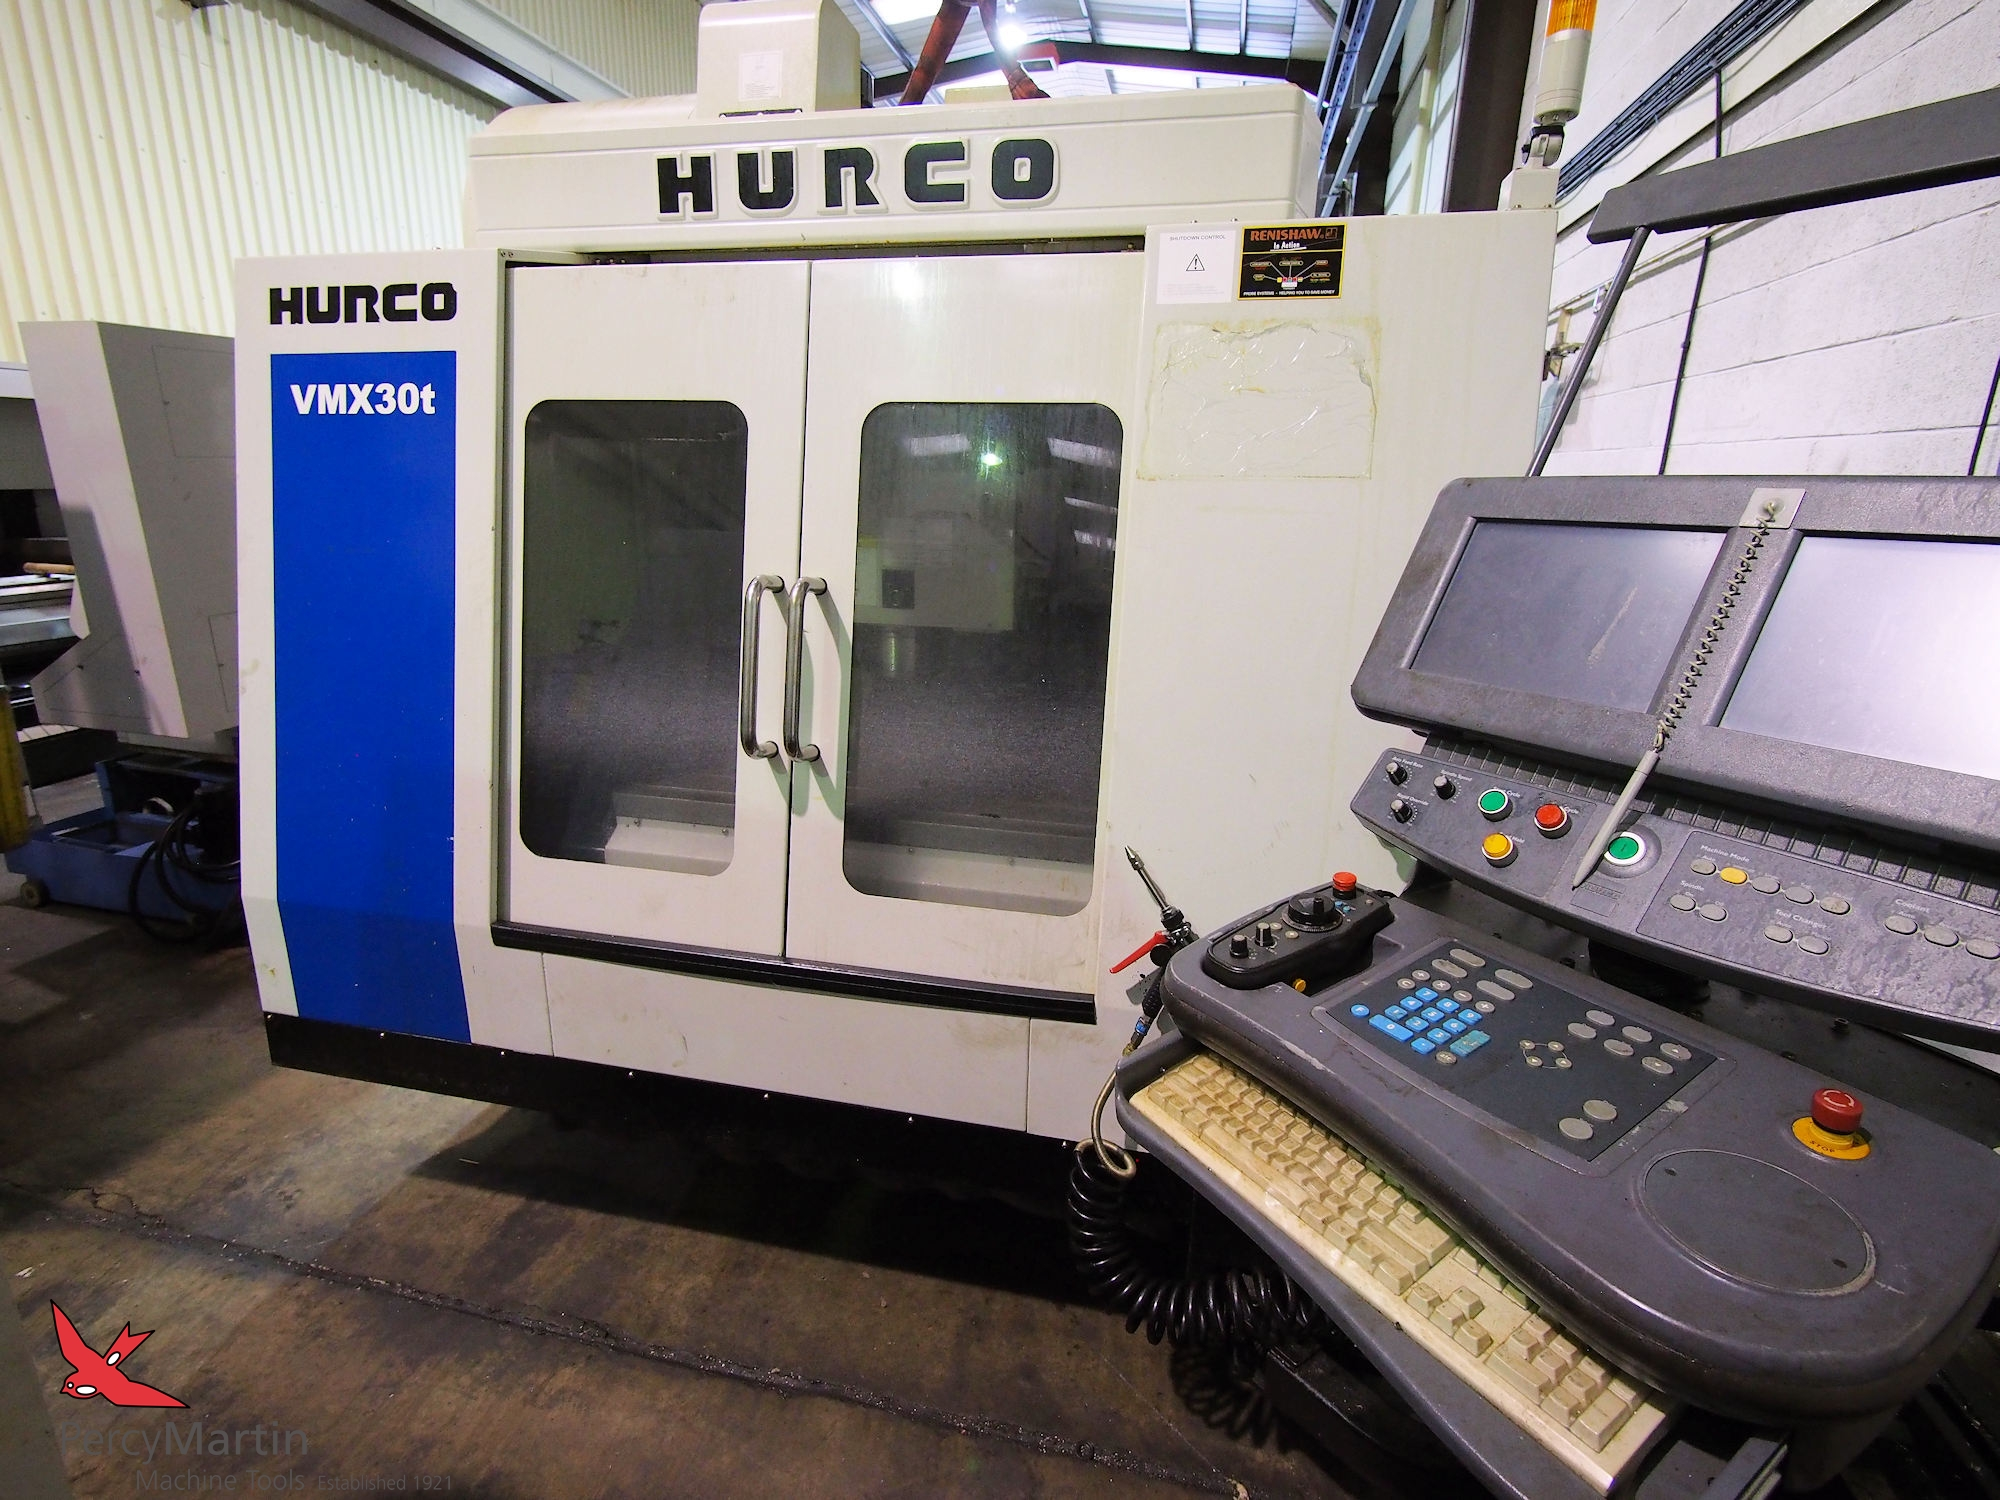 used Hurco VMX30T 2011 Vertical Machining Centres for sale